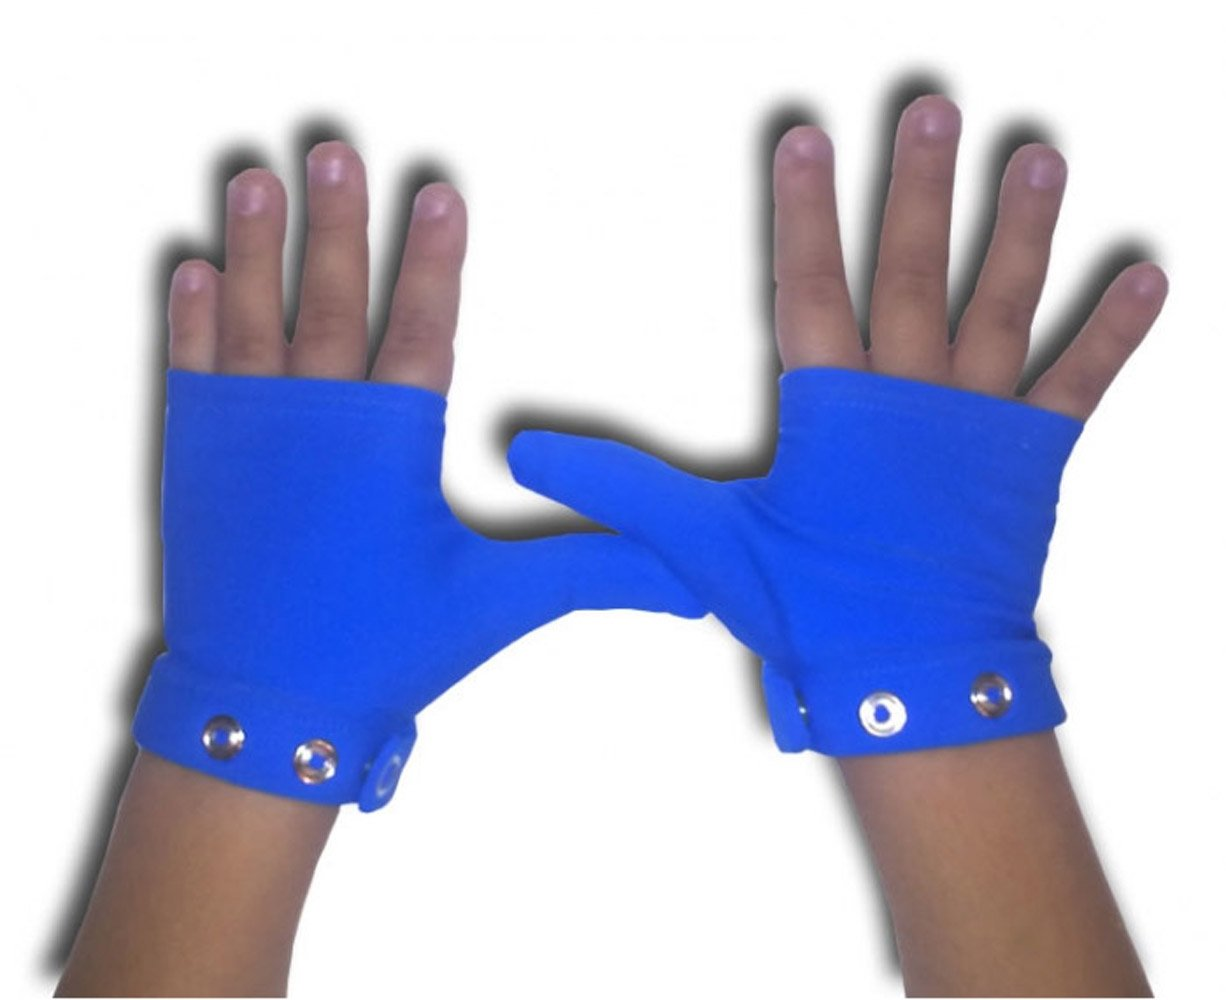 Stop Thumb Sucking with Bouncing Blue Small ages 2 - 4 years old by Glovey Huggey